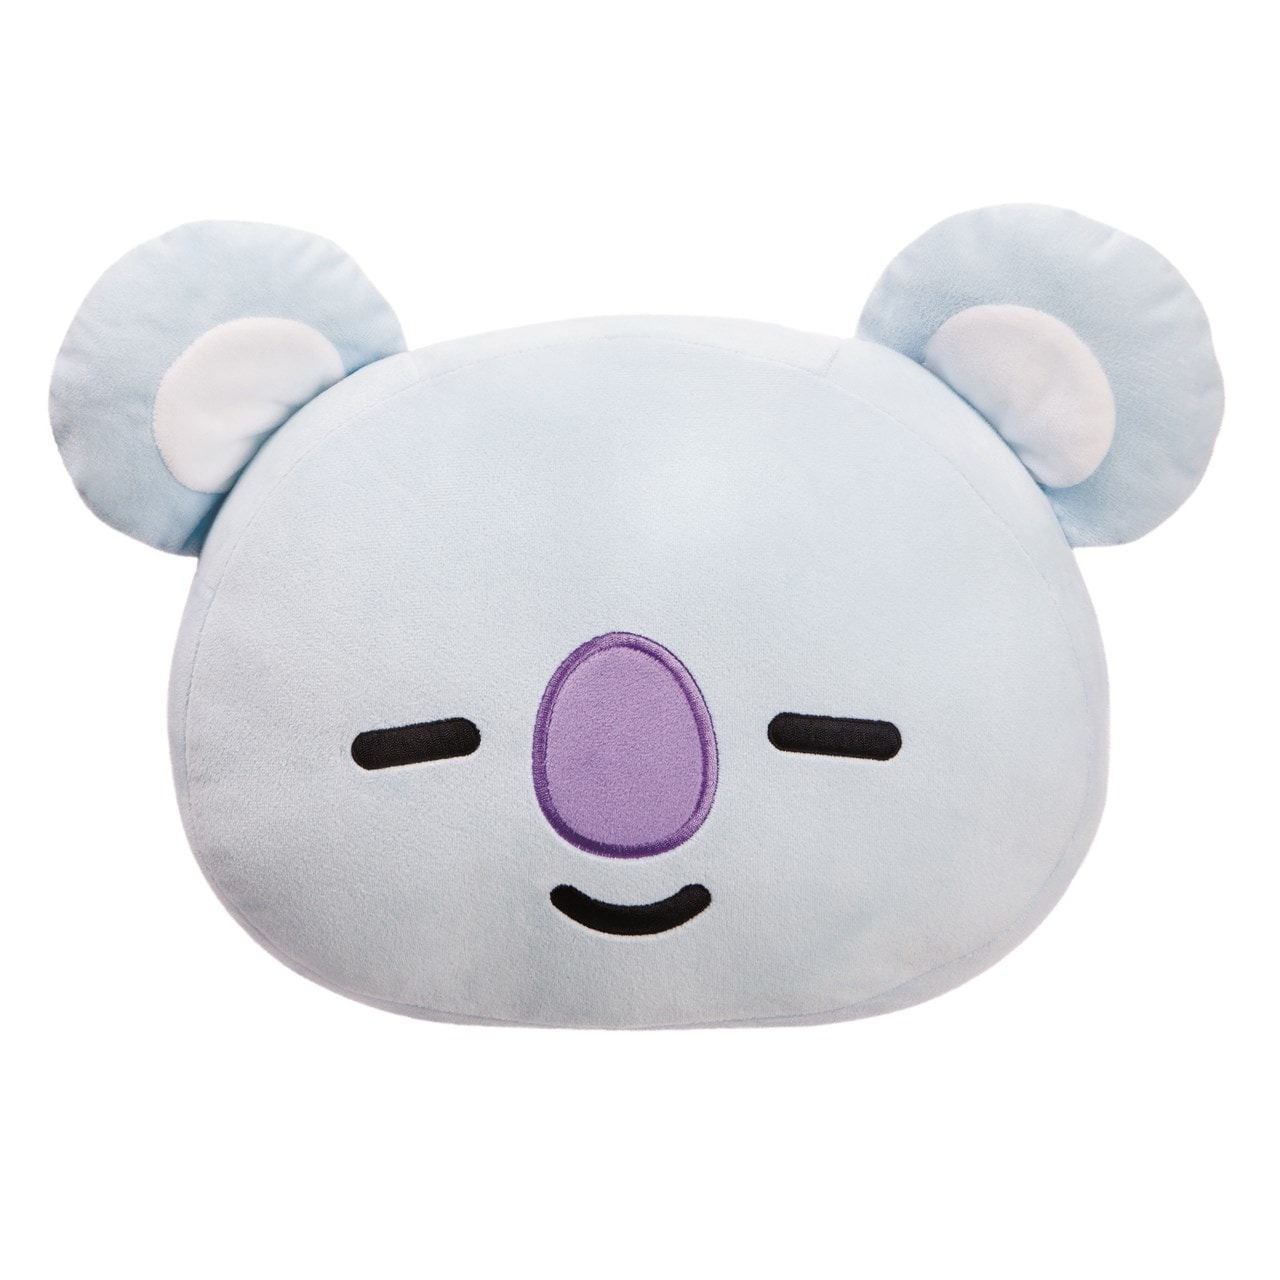 Koya: BT21 Plush Cushion - 1